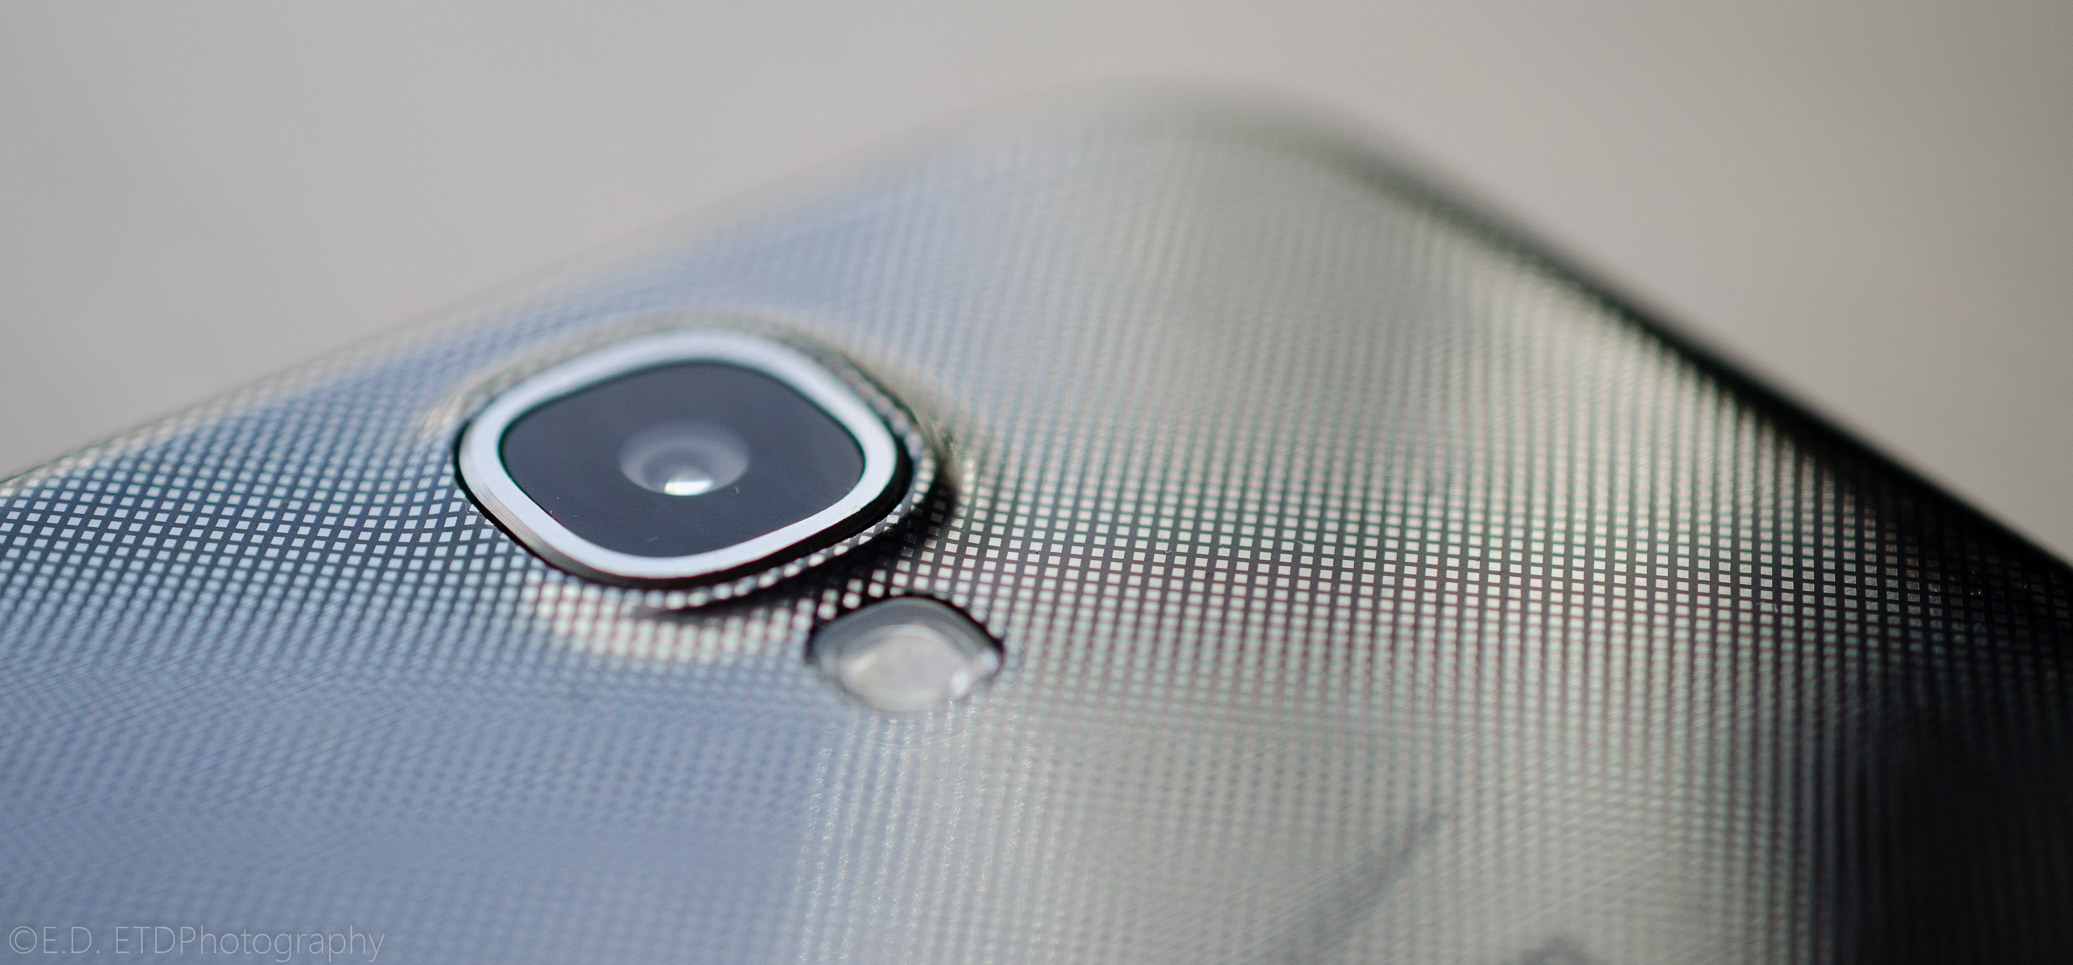 The Samsung Galaxy S4 uses a tiny ⅓ inch sensor. Photo by Eric Dye.